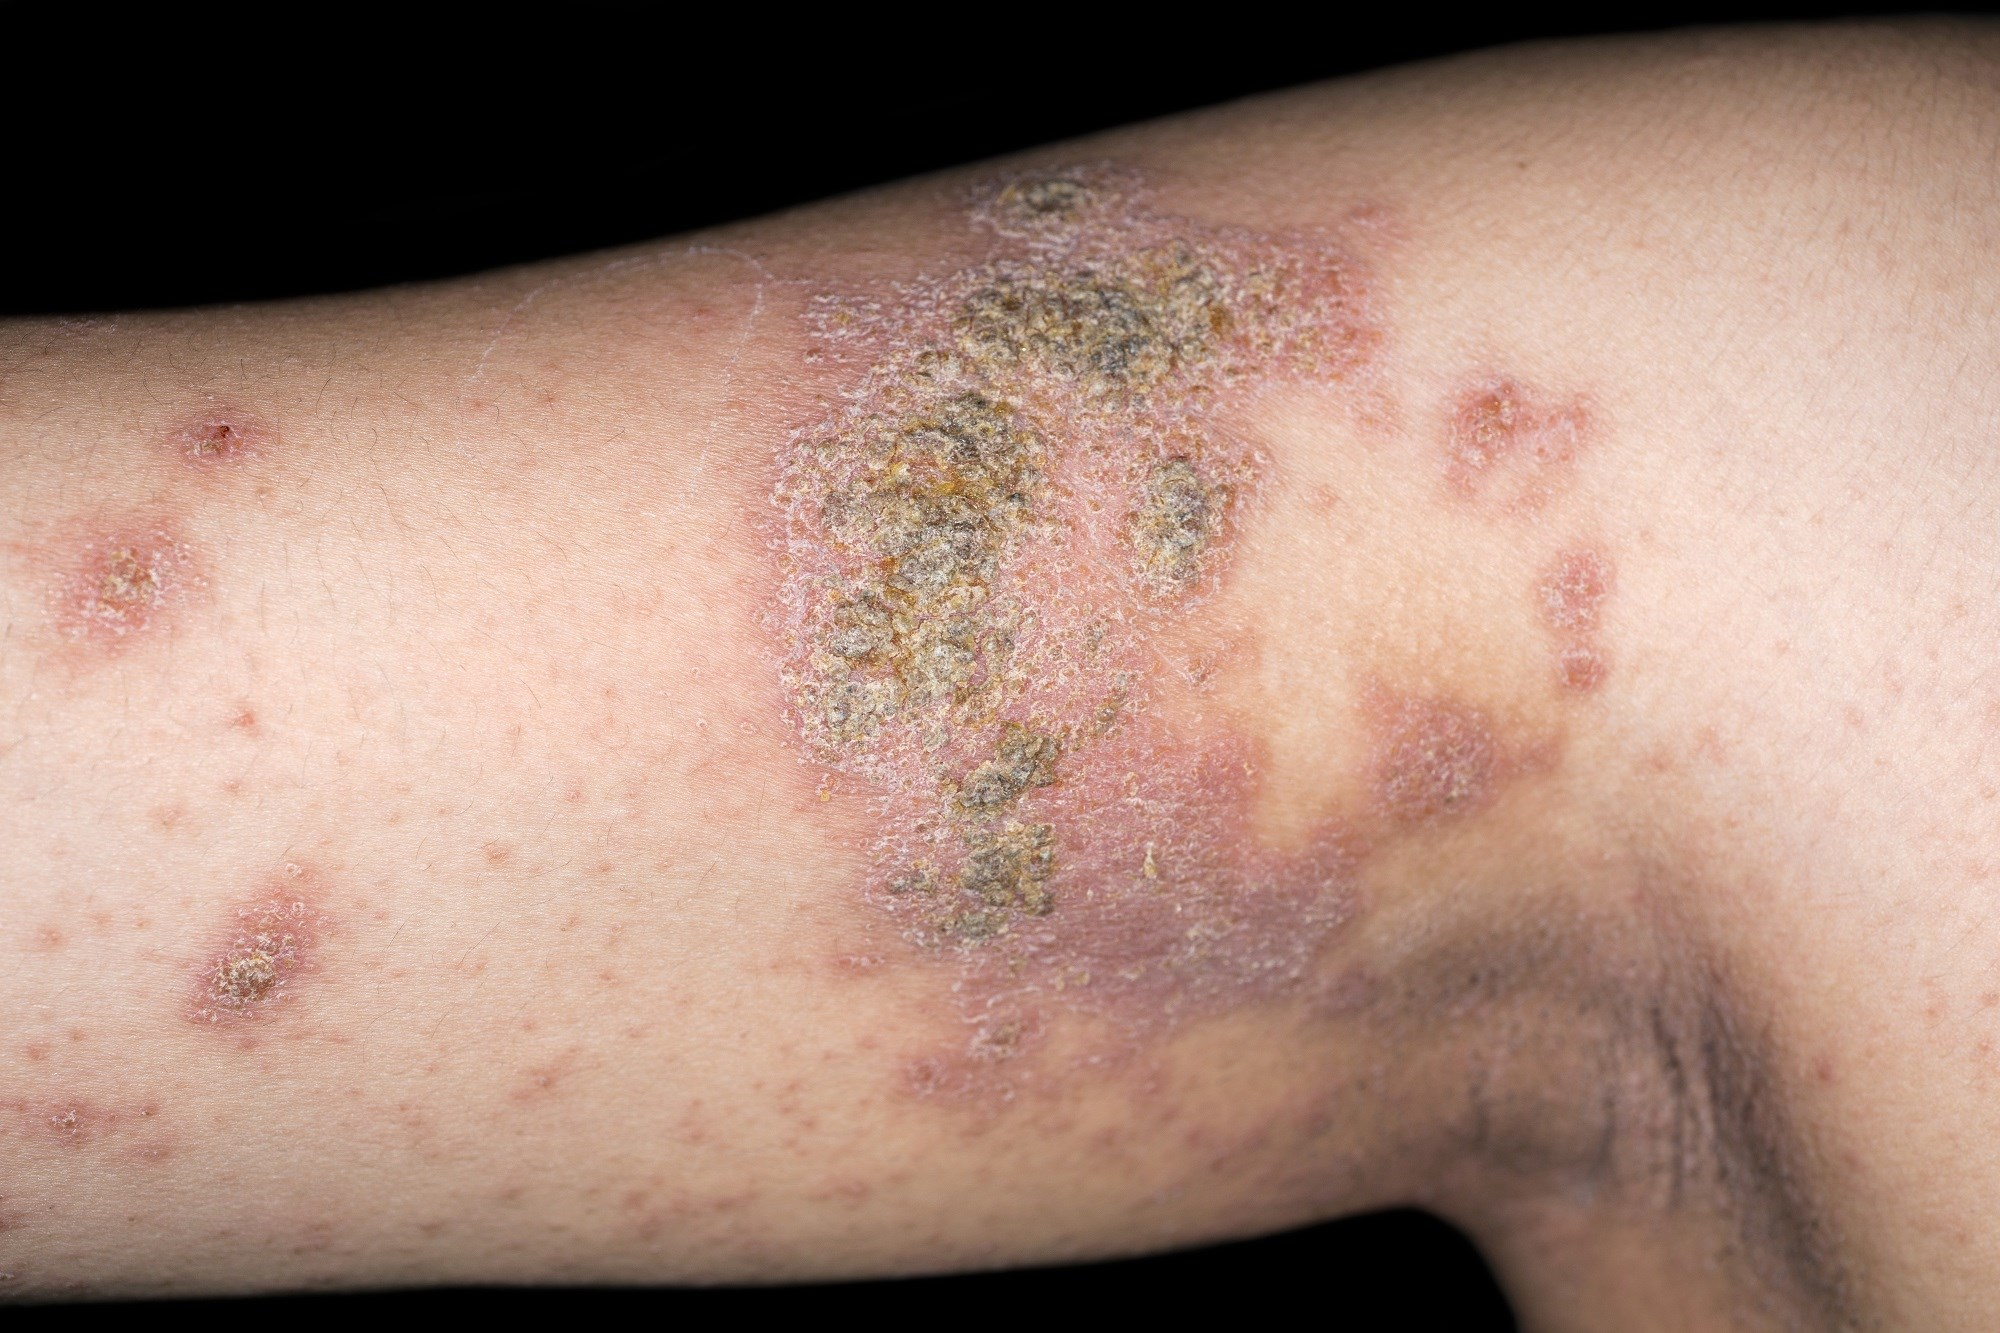 Prevalence of Atopic Dermatitis 7.3% in U.S. Adults